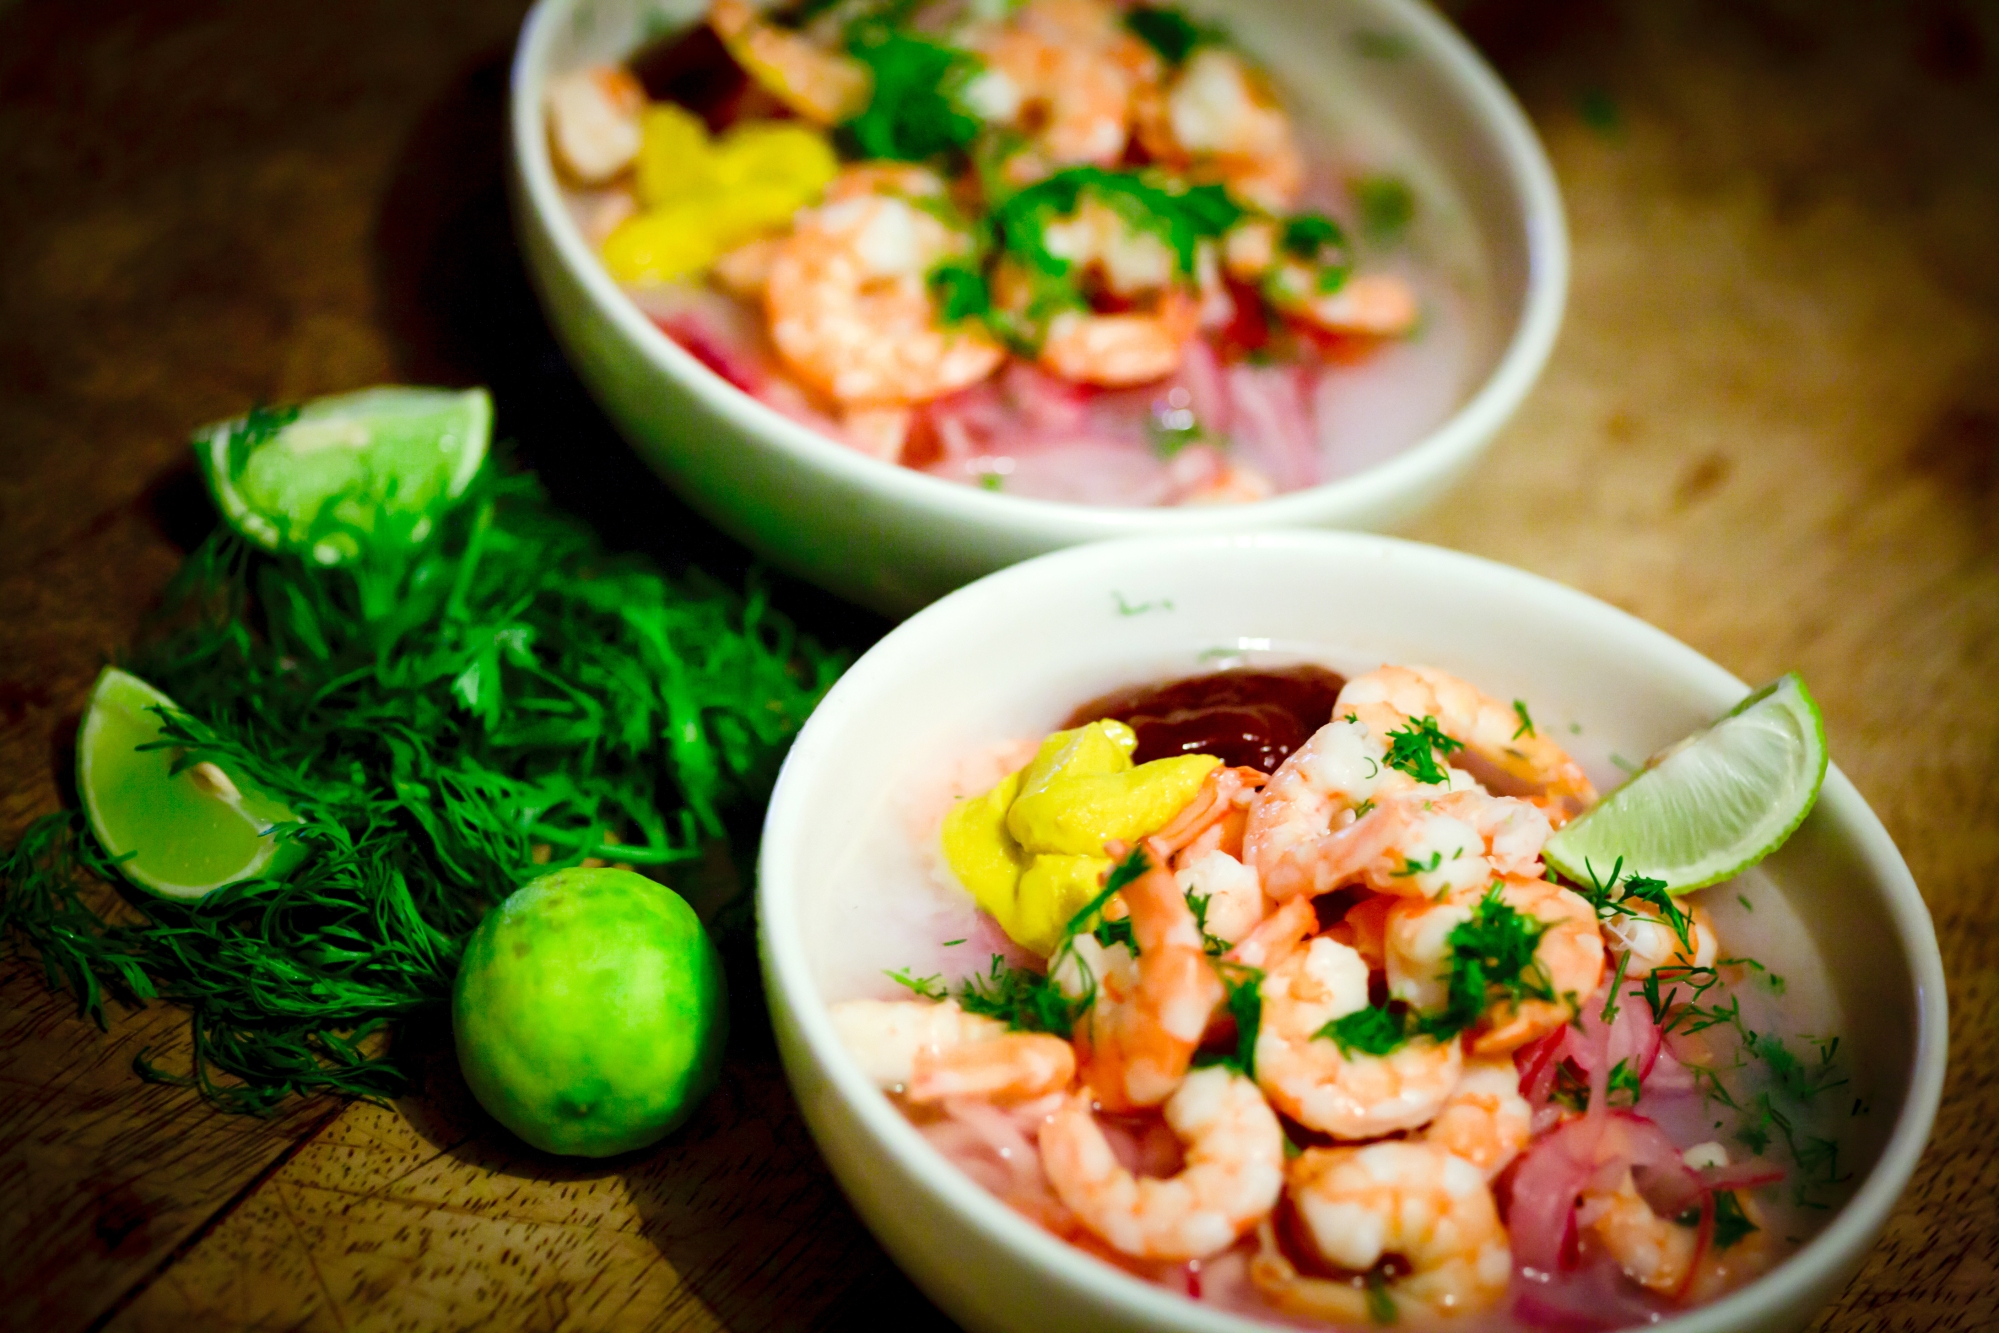 Mouthwatering Ceviche